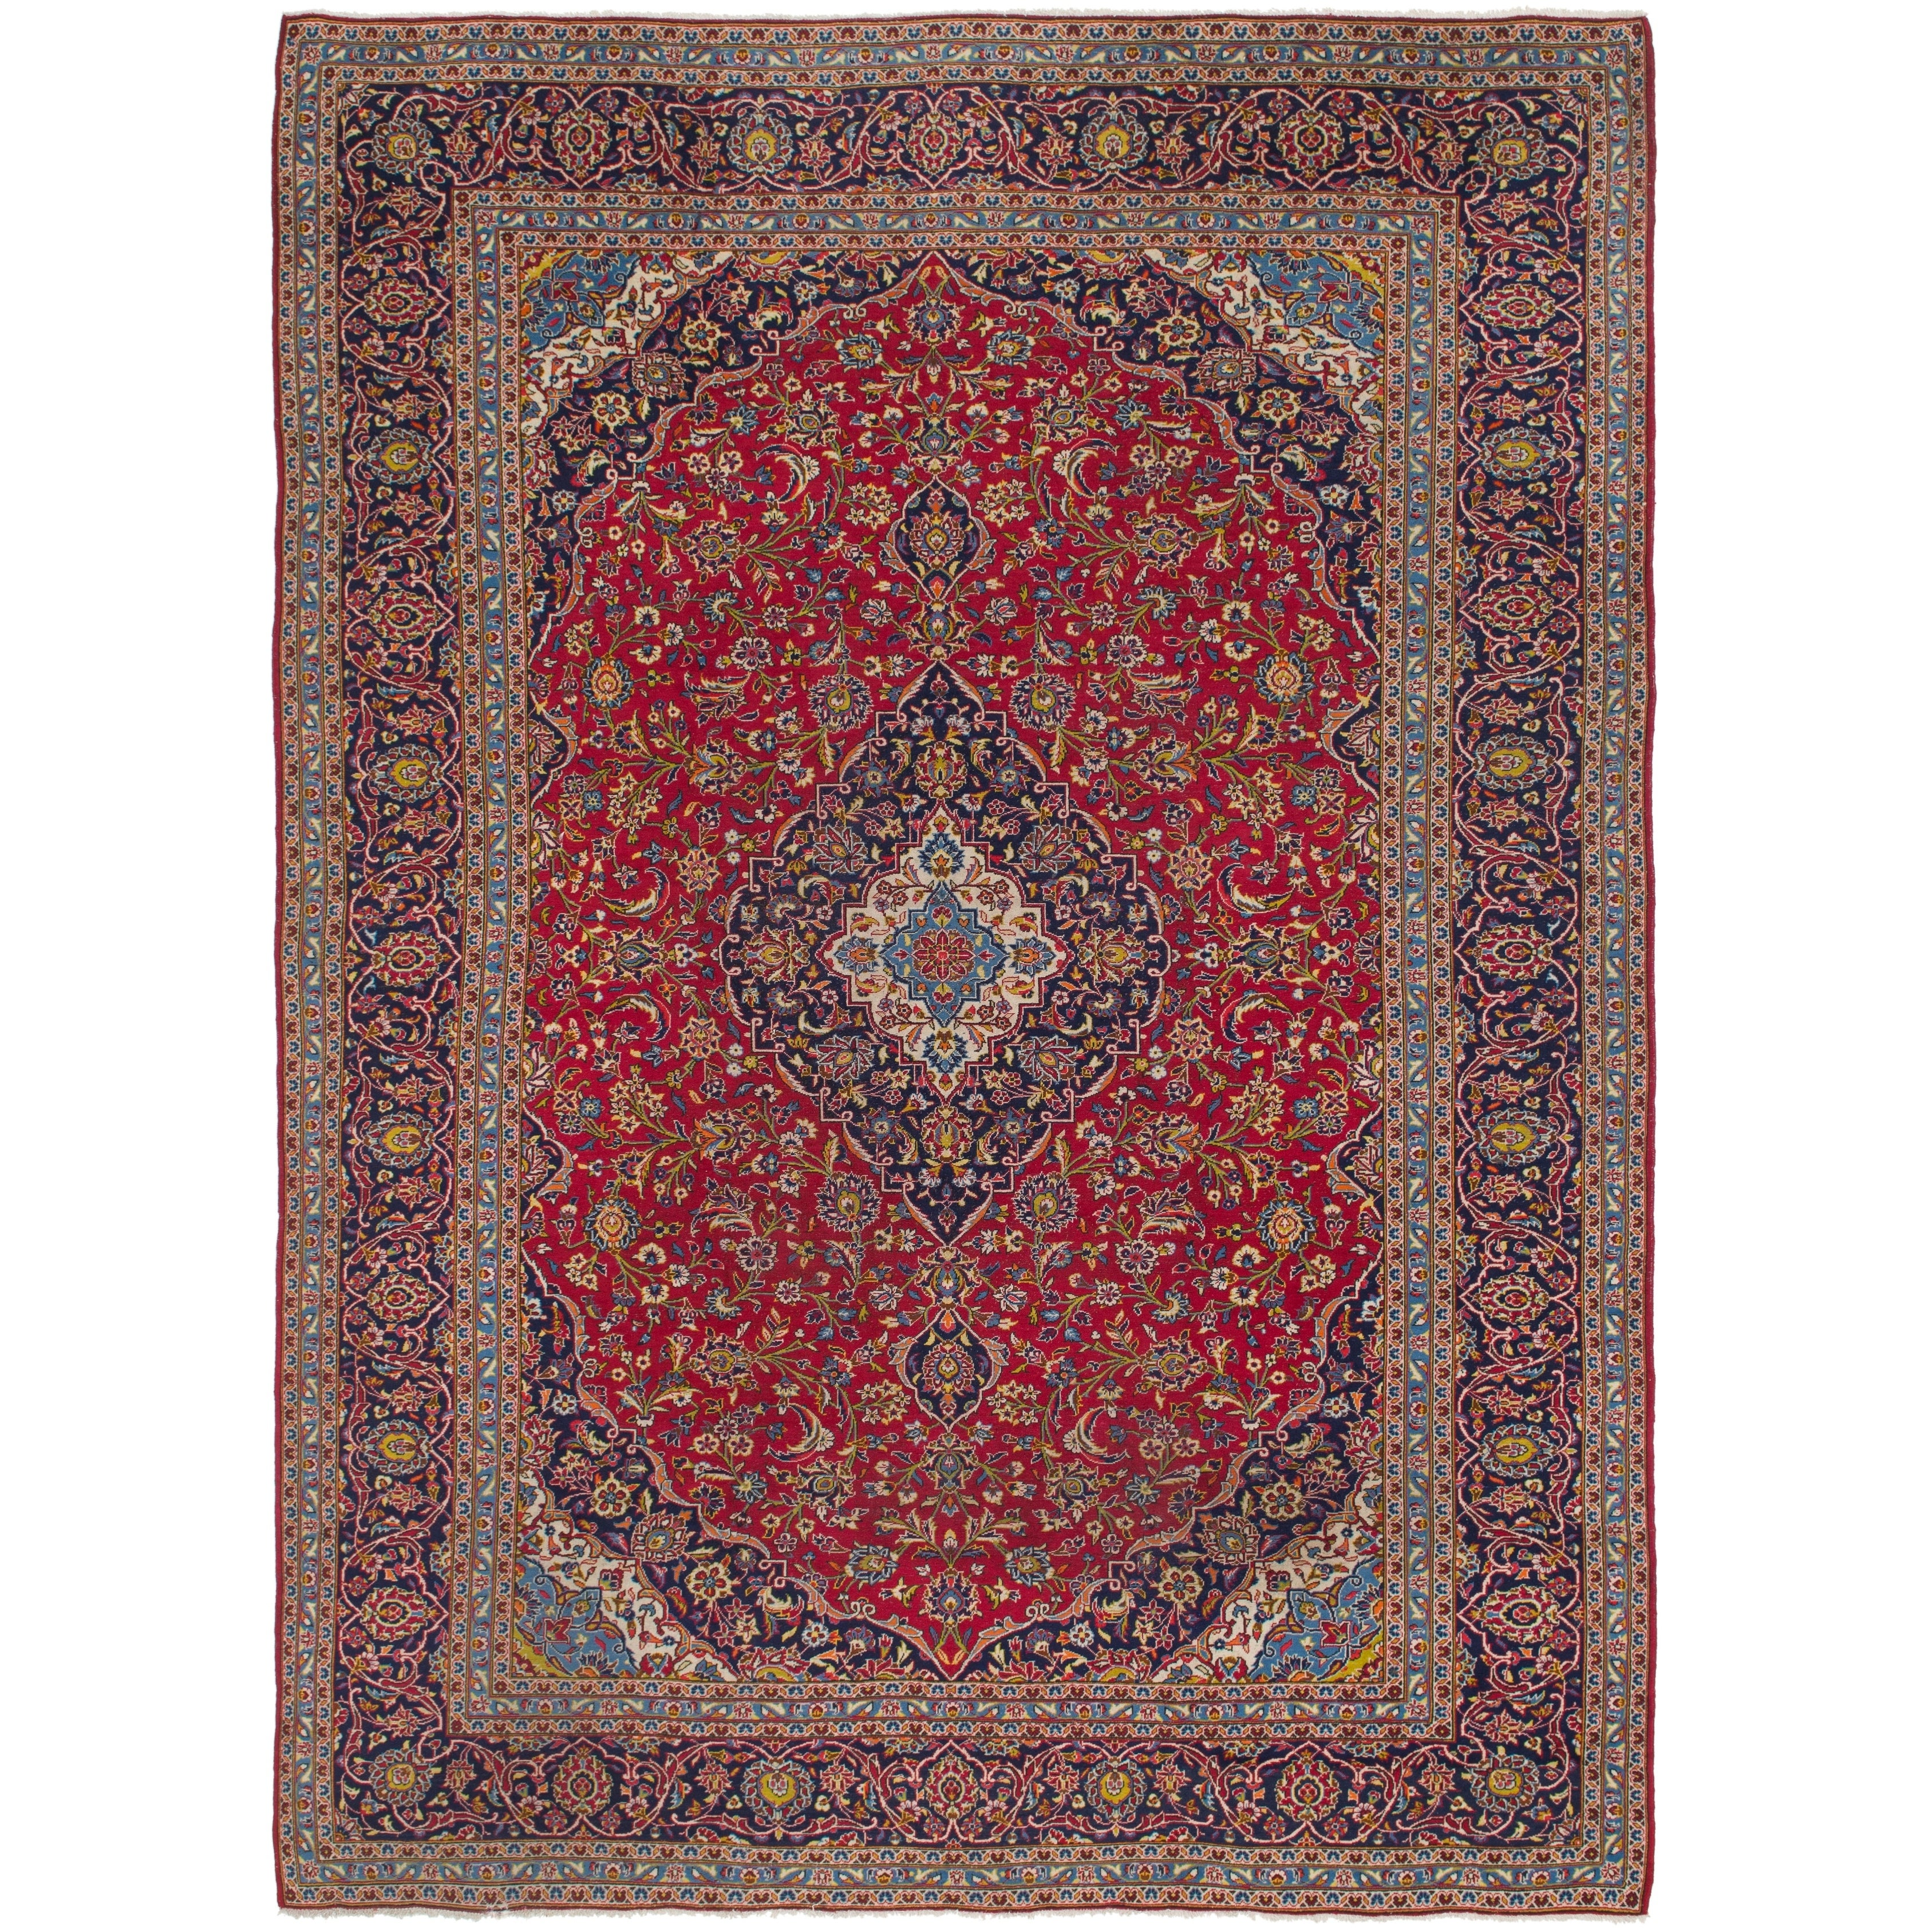 Hand Knotted Kashan Semi Antique Wool Runner Rug - 9 9 x 13 8 (Red - 9 9 x 13 8)